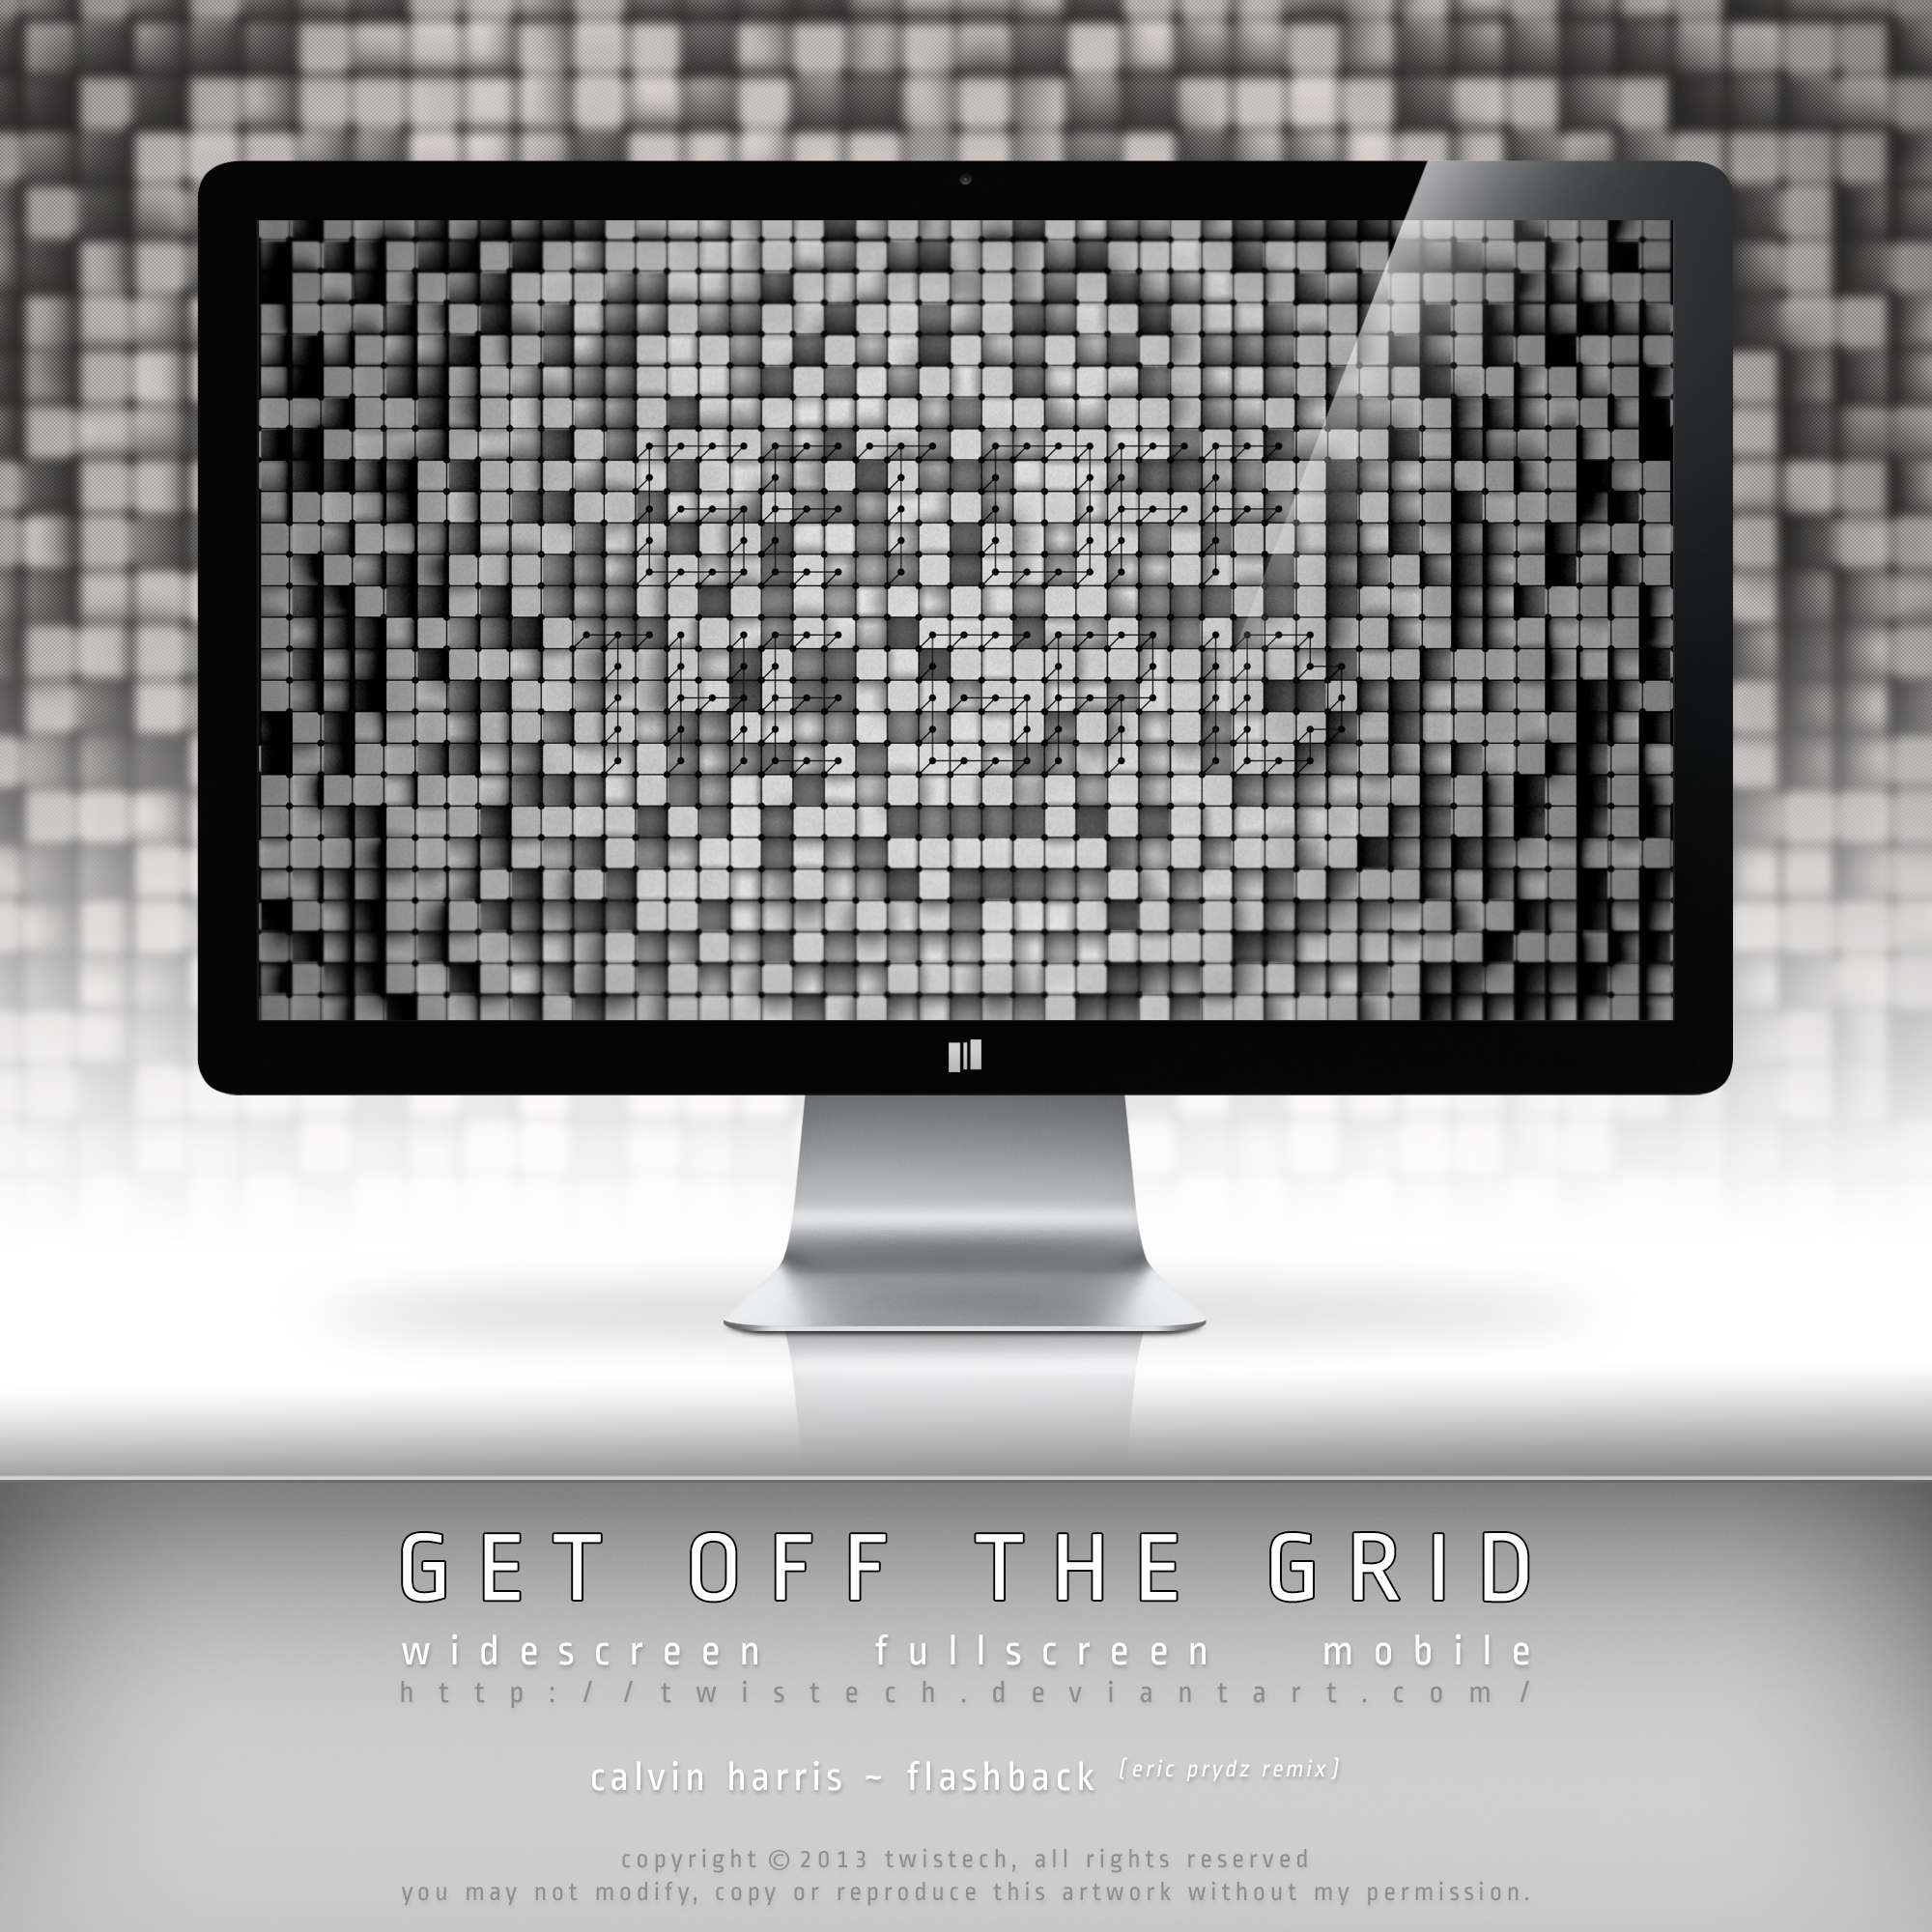 Get off the grid by Twistech